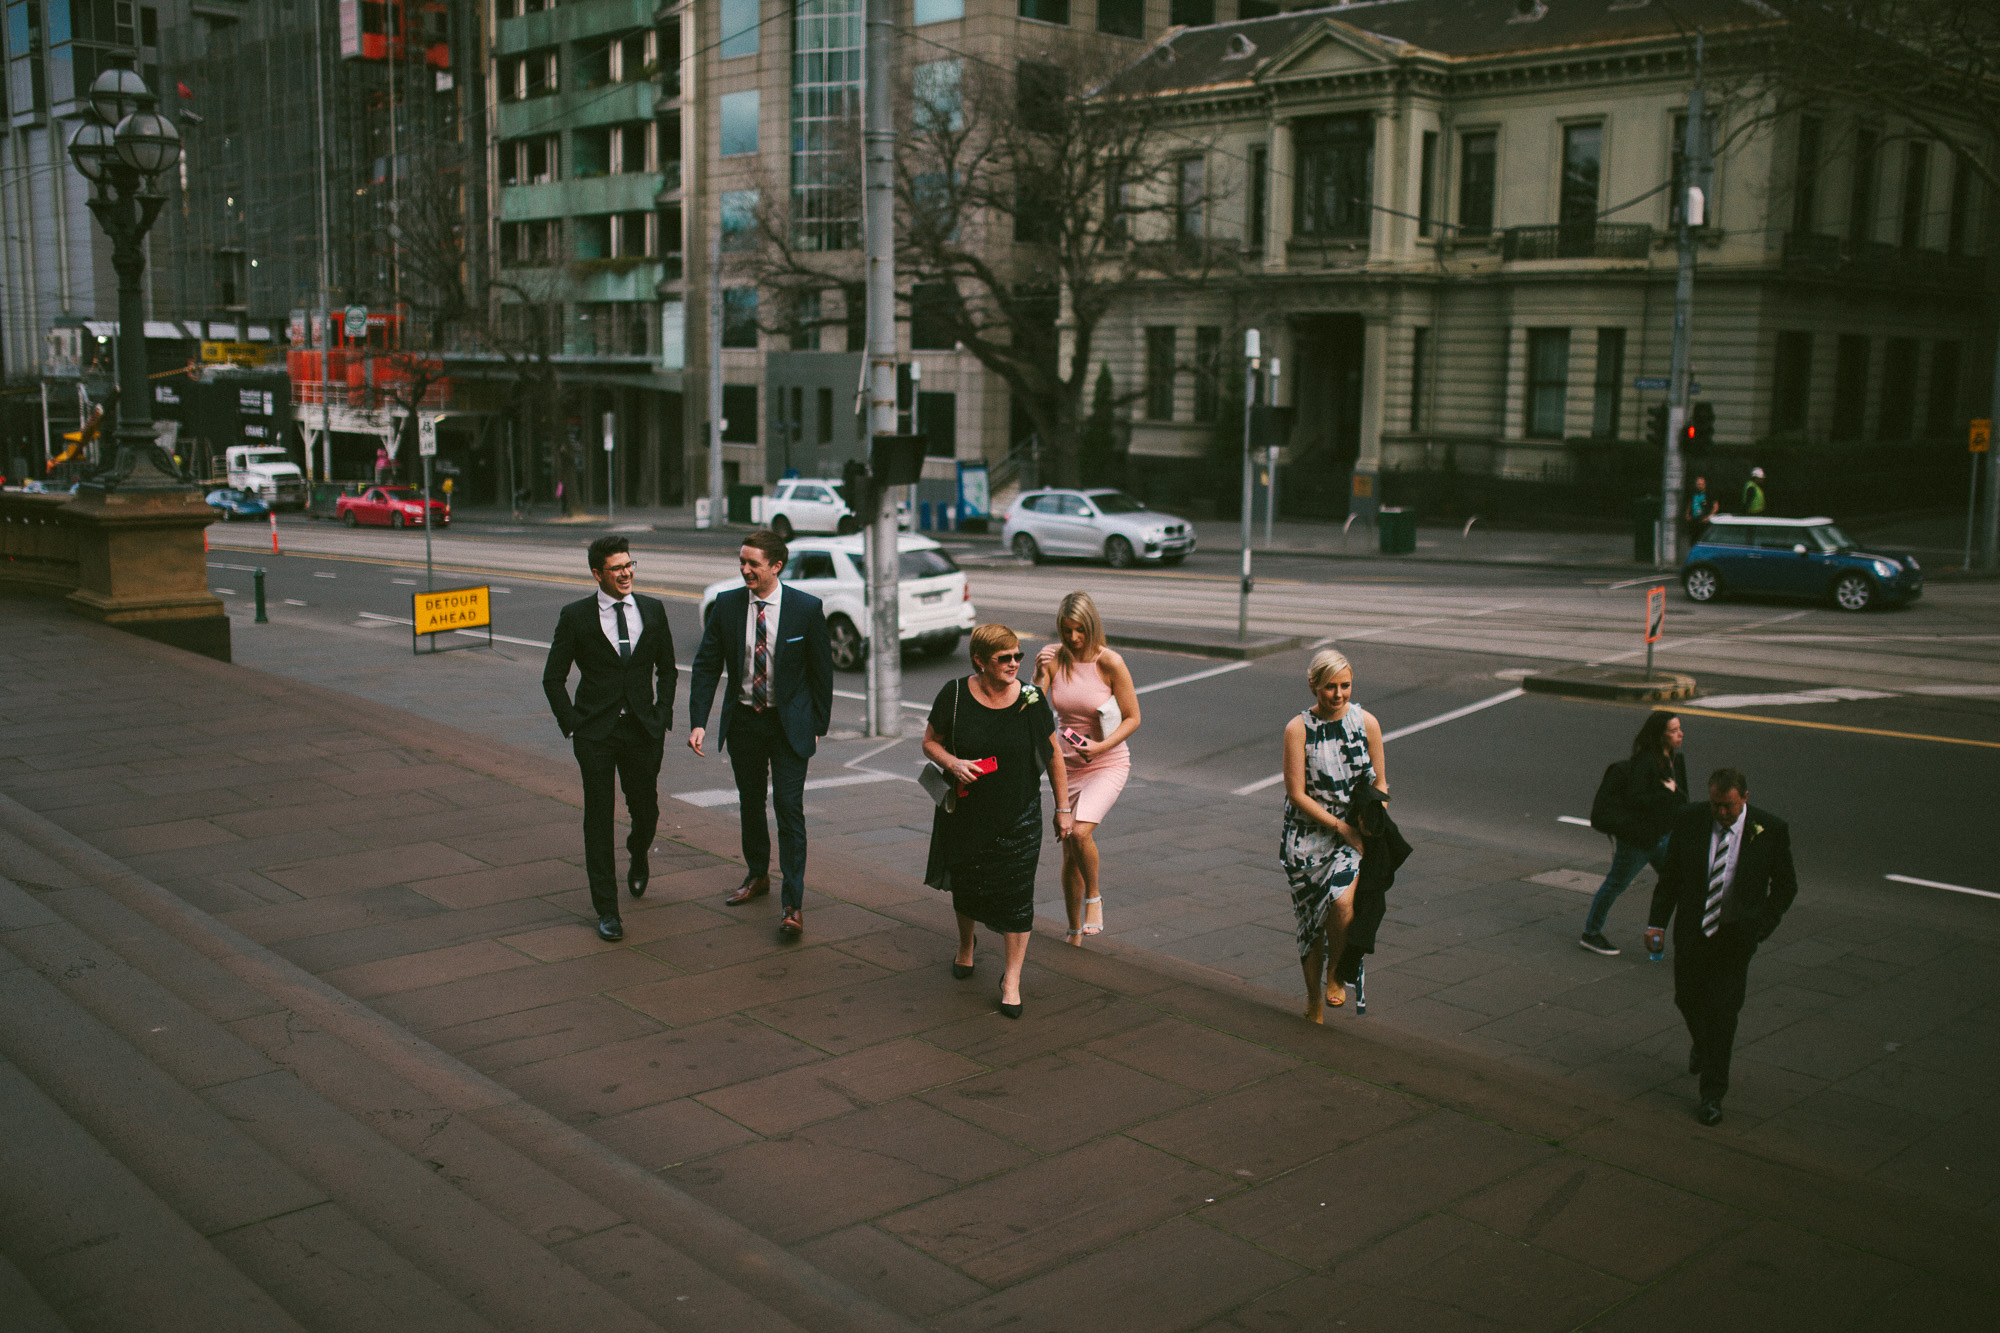 Jason-Charlotte-Melbourne-Quirky-Urban-Alternative-Wedding-Photography-18